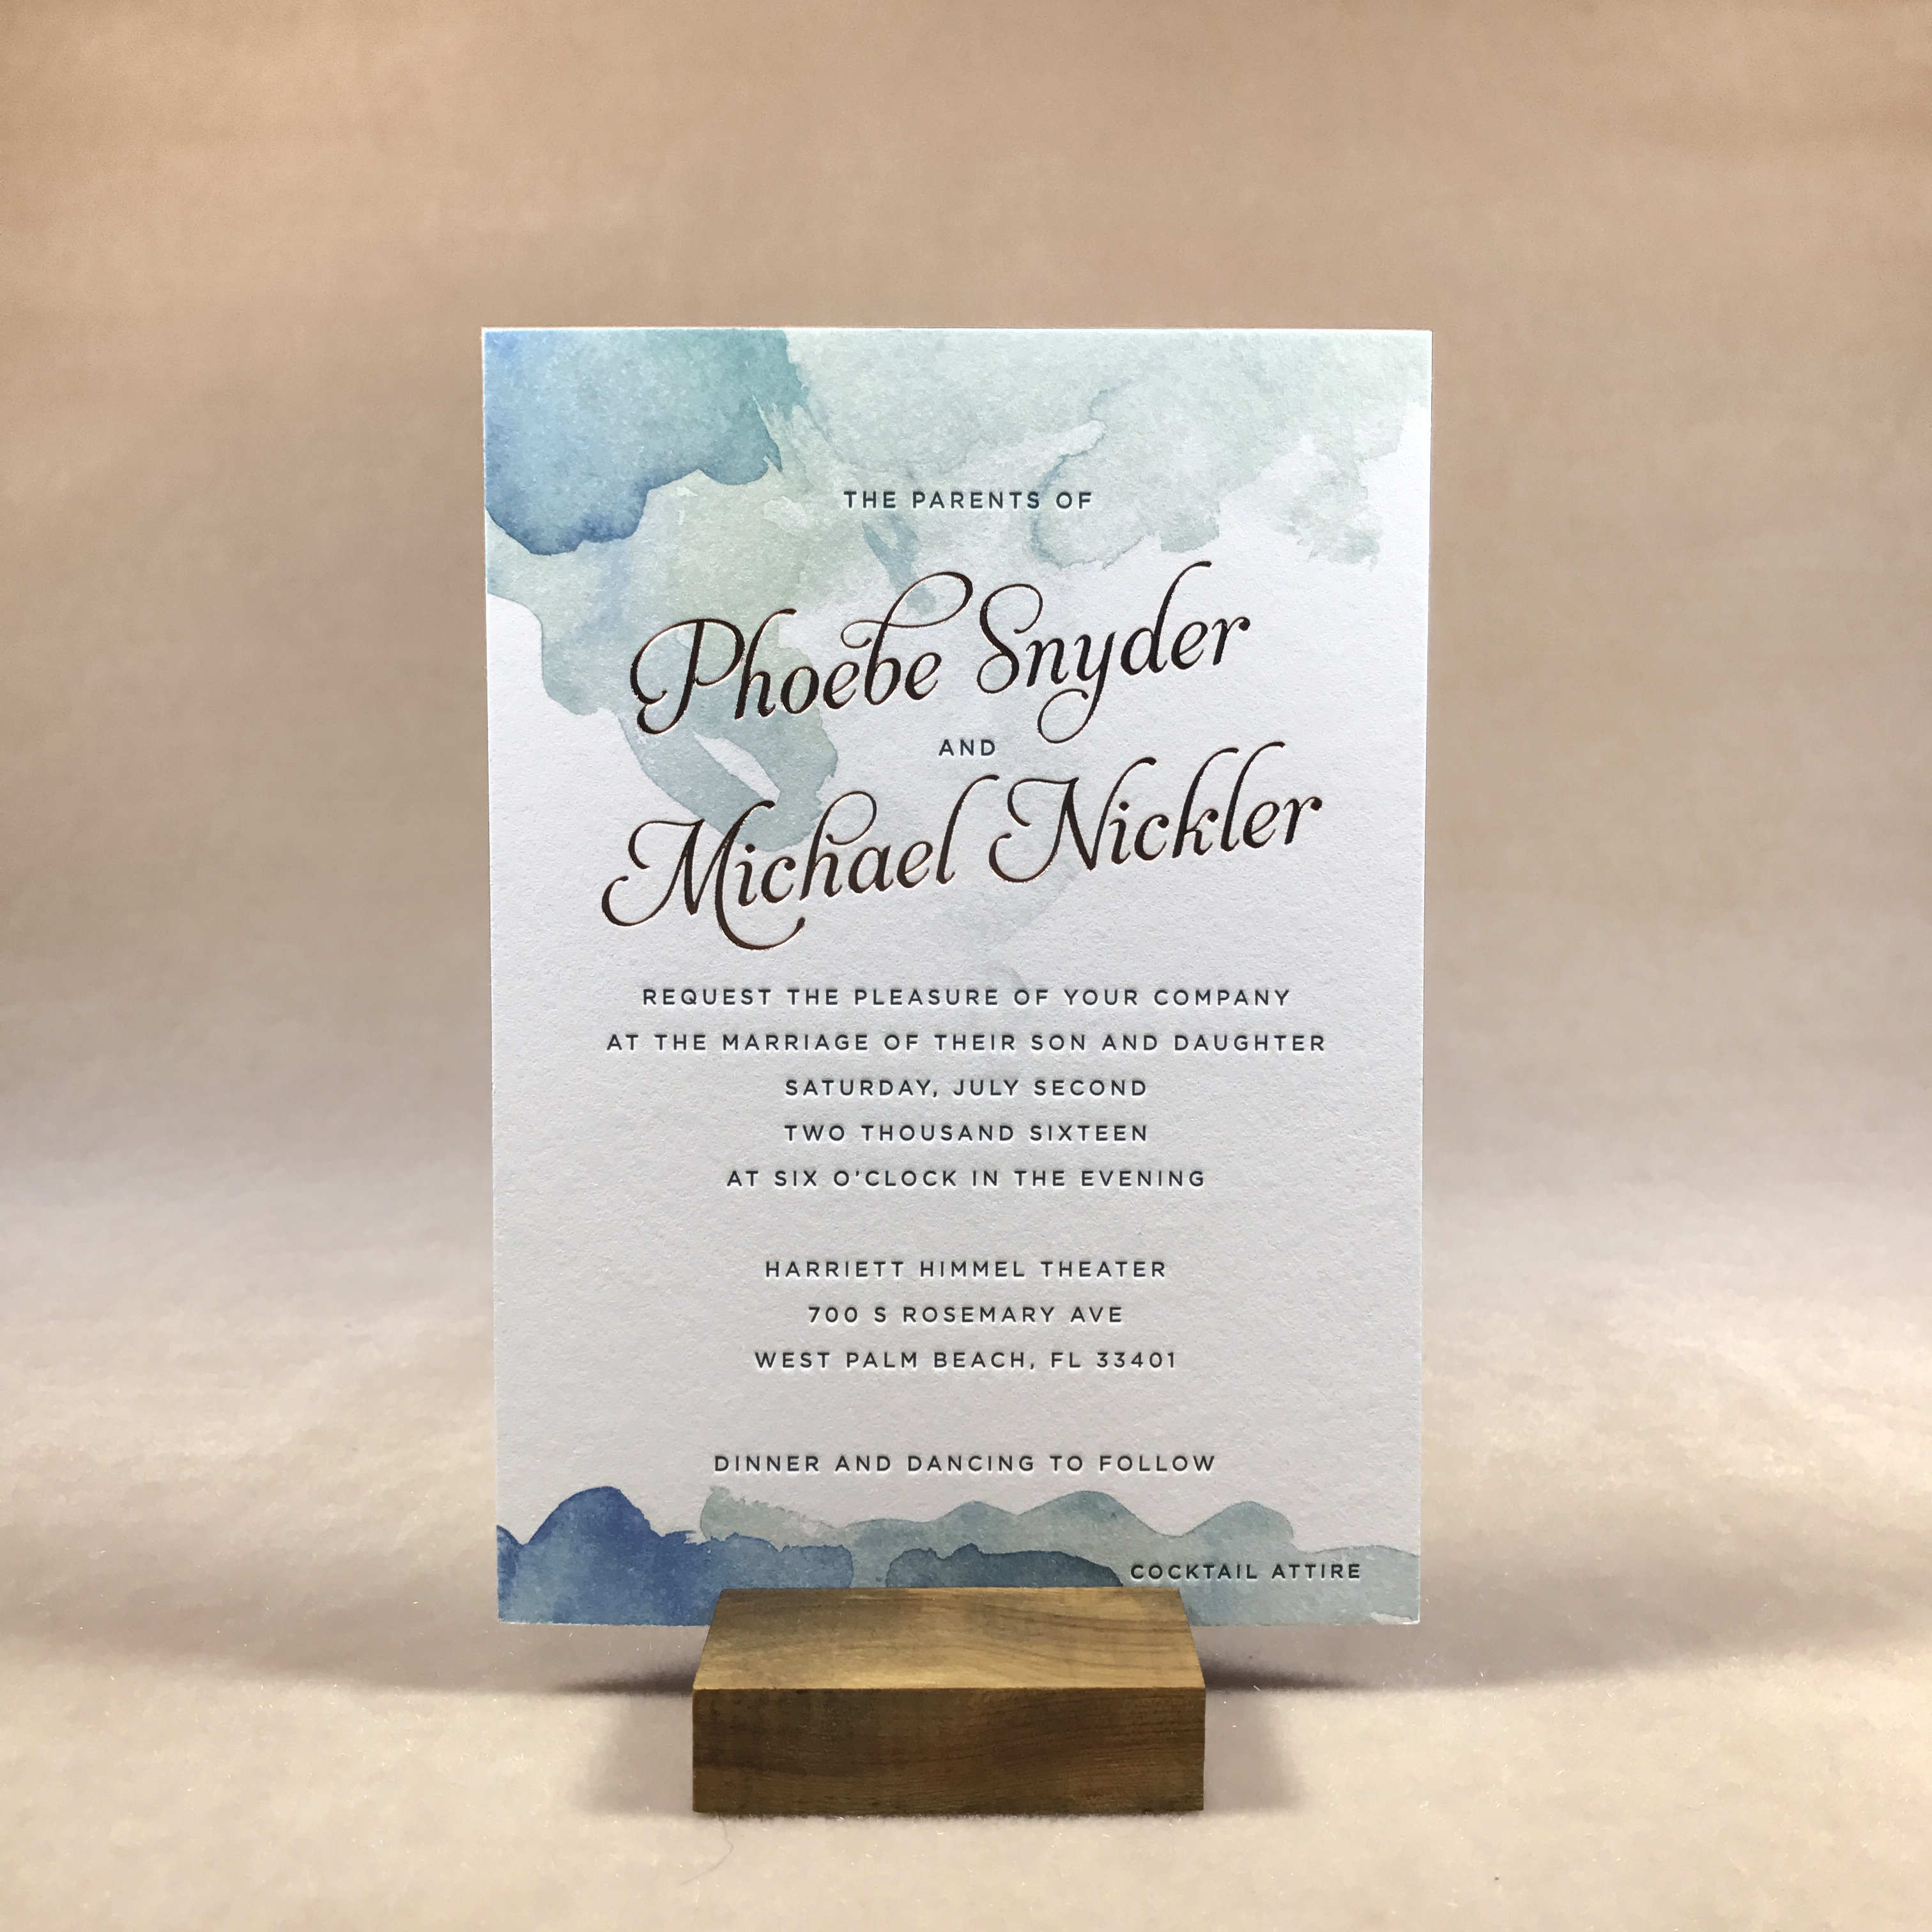 Able Invitations & Stationery - West Beach Florida